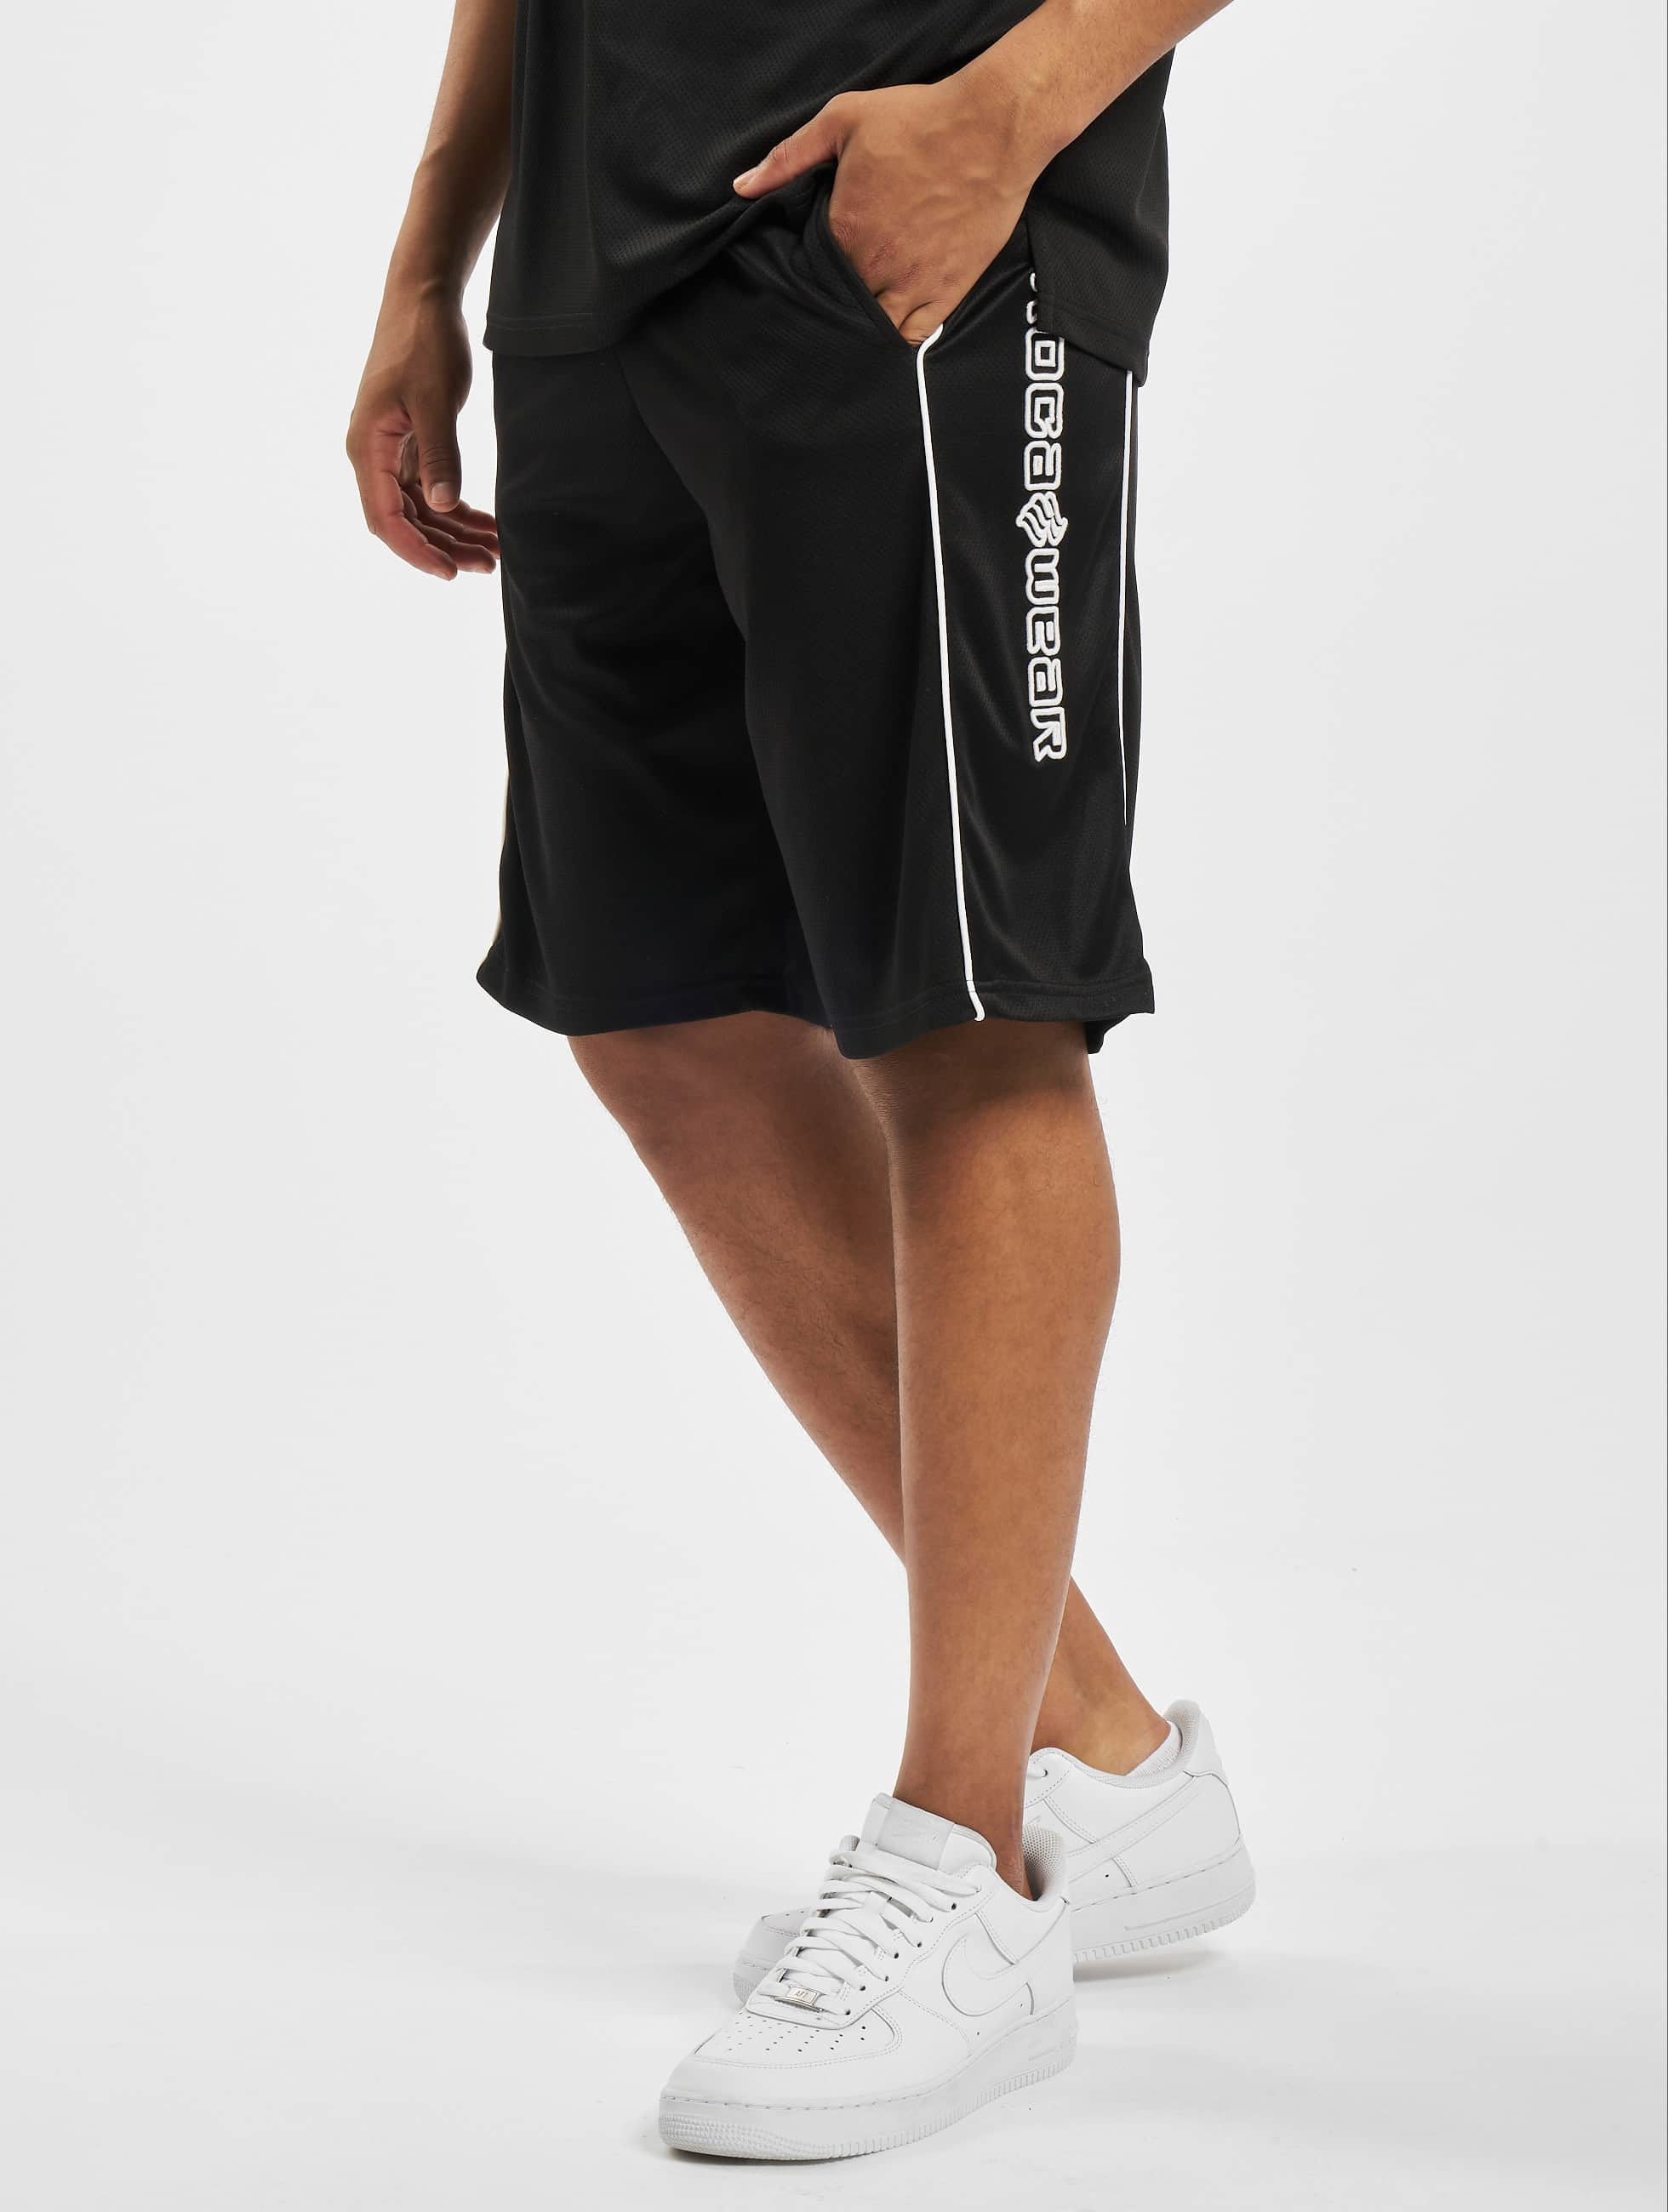 Rocawear / Short Albany in black S